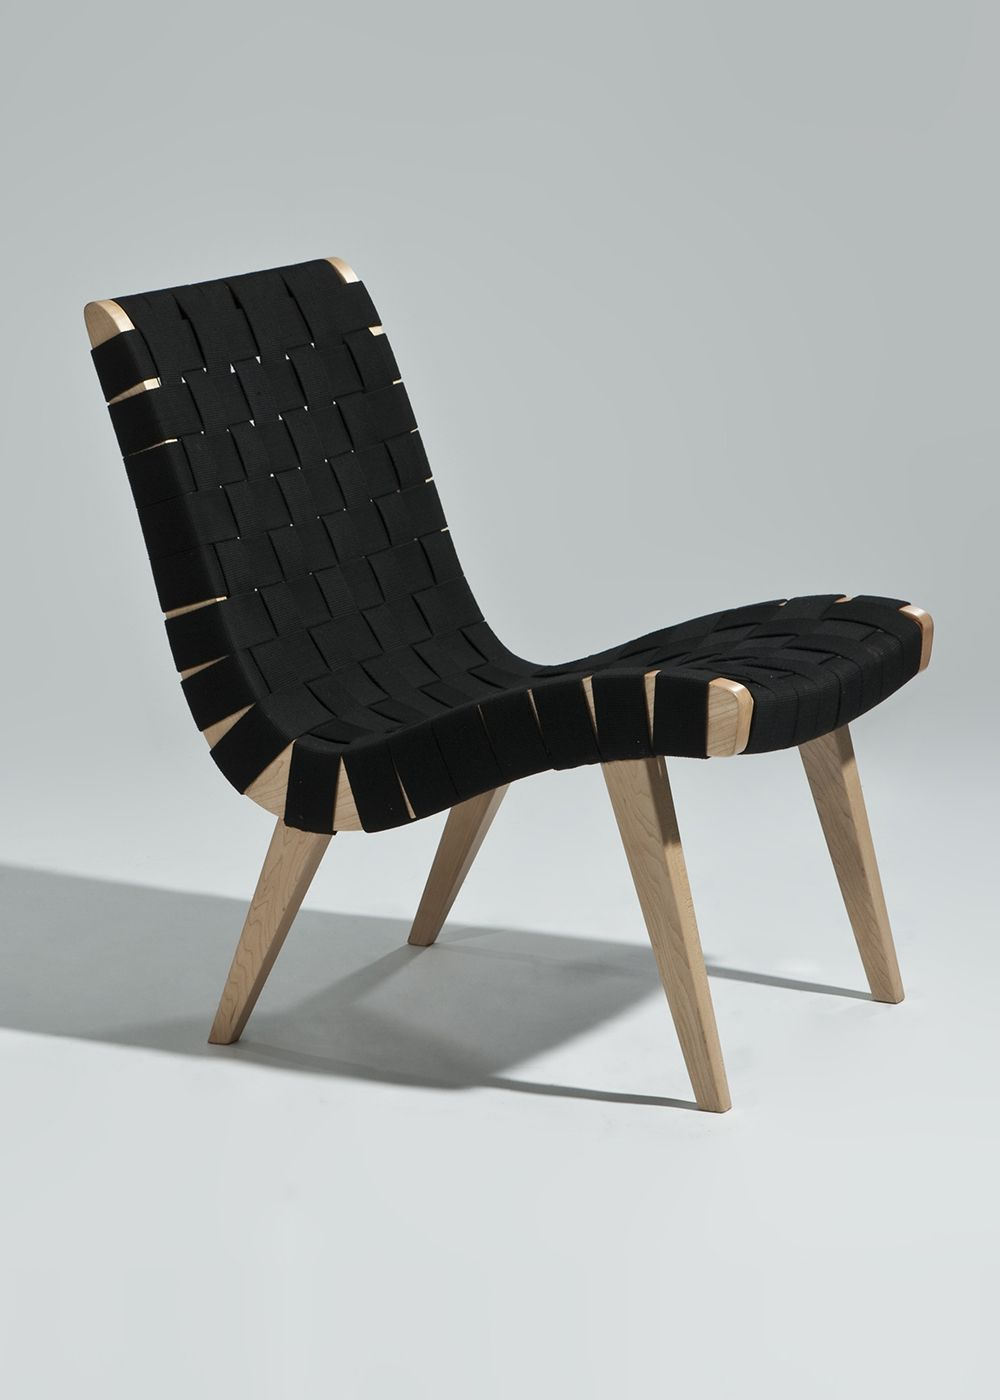 The Weaver Lounge Chair Is Solid Wood With A Woven Fabric